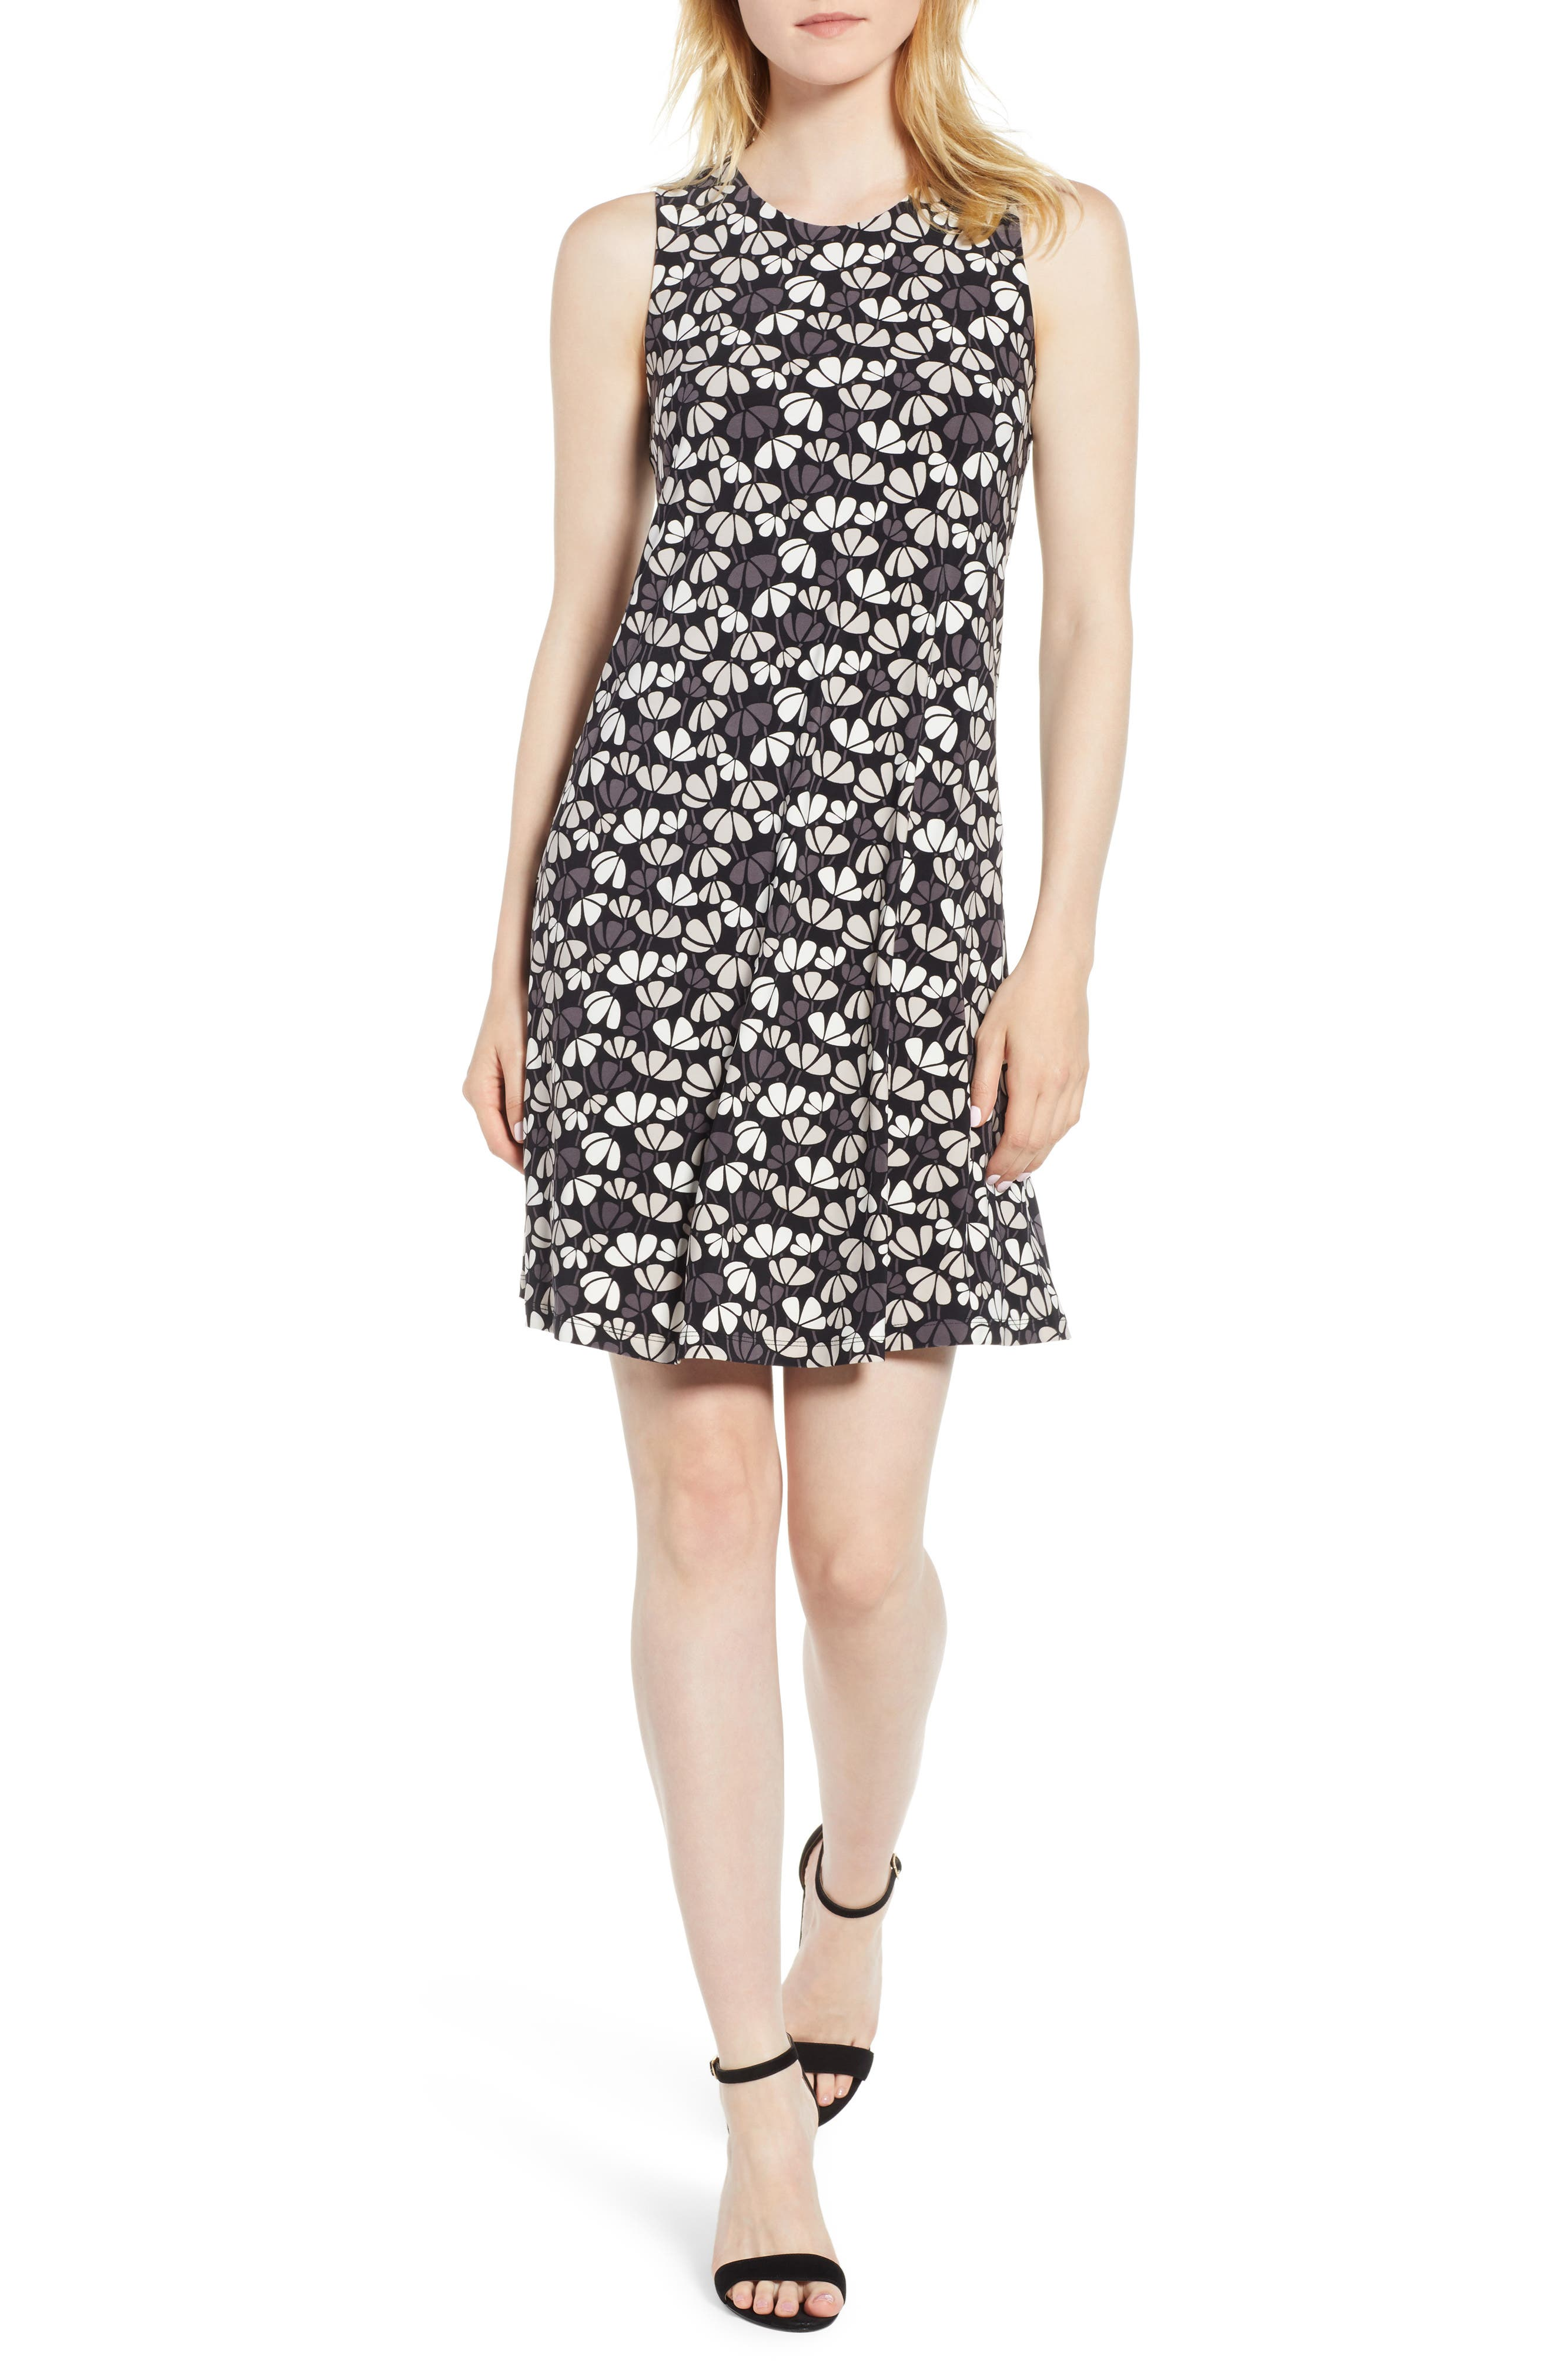 Flowerfall Stretch Knit Swing Dress,                             Main thumbnail 1, color,                             Black/ Oyster Shell Combo